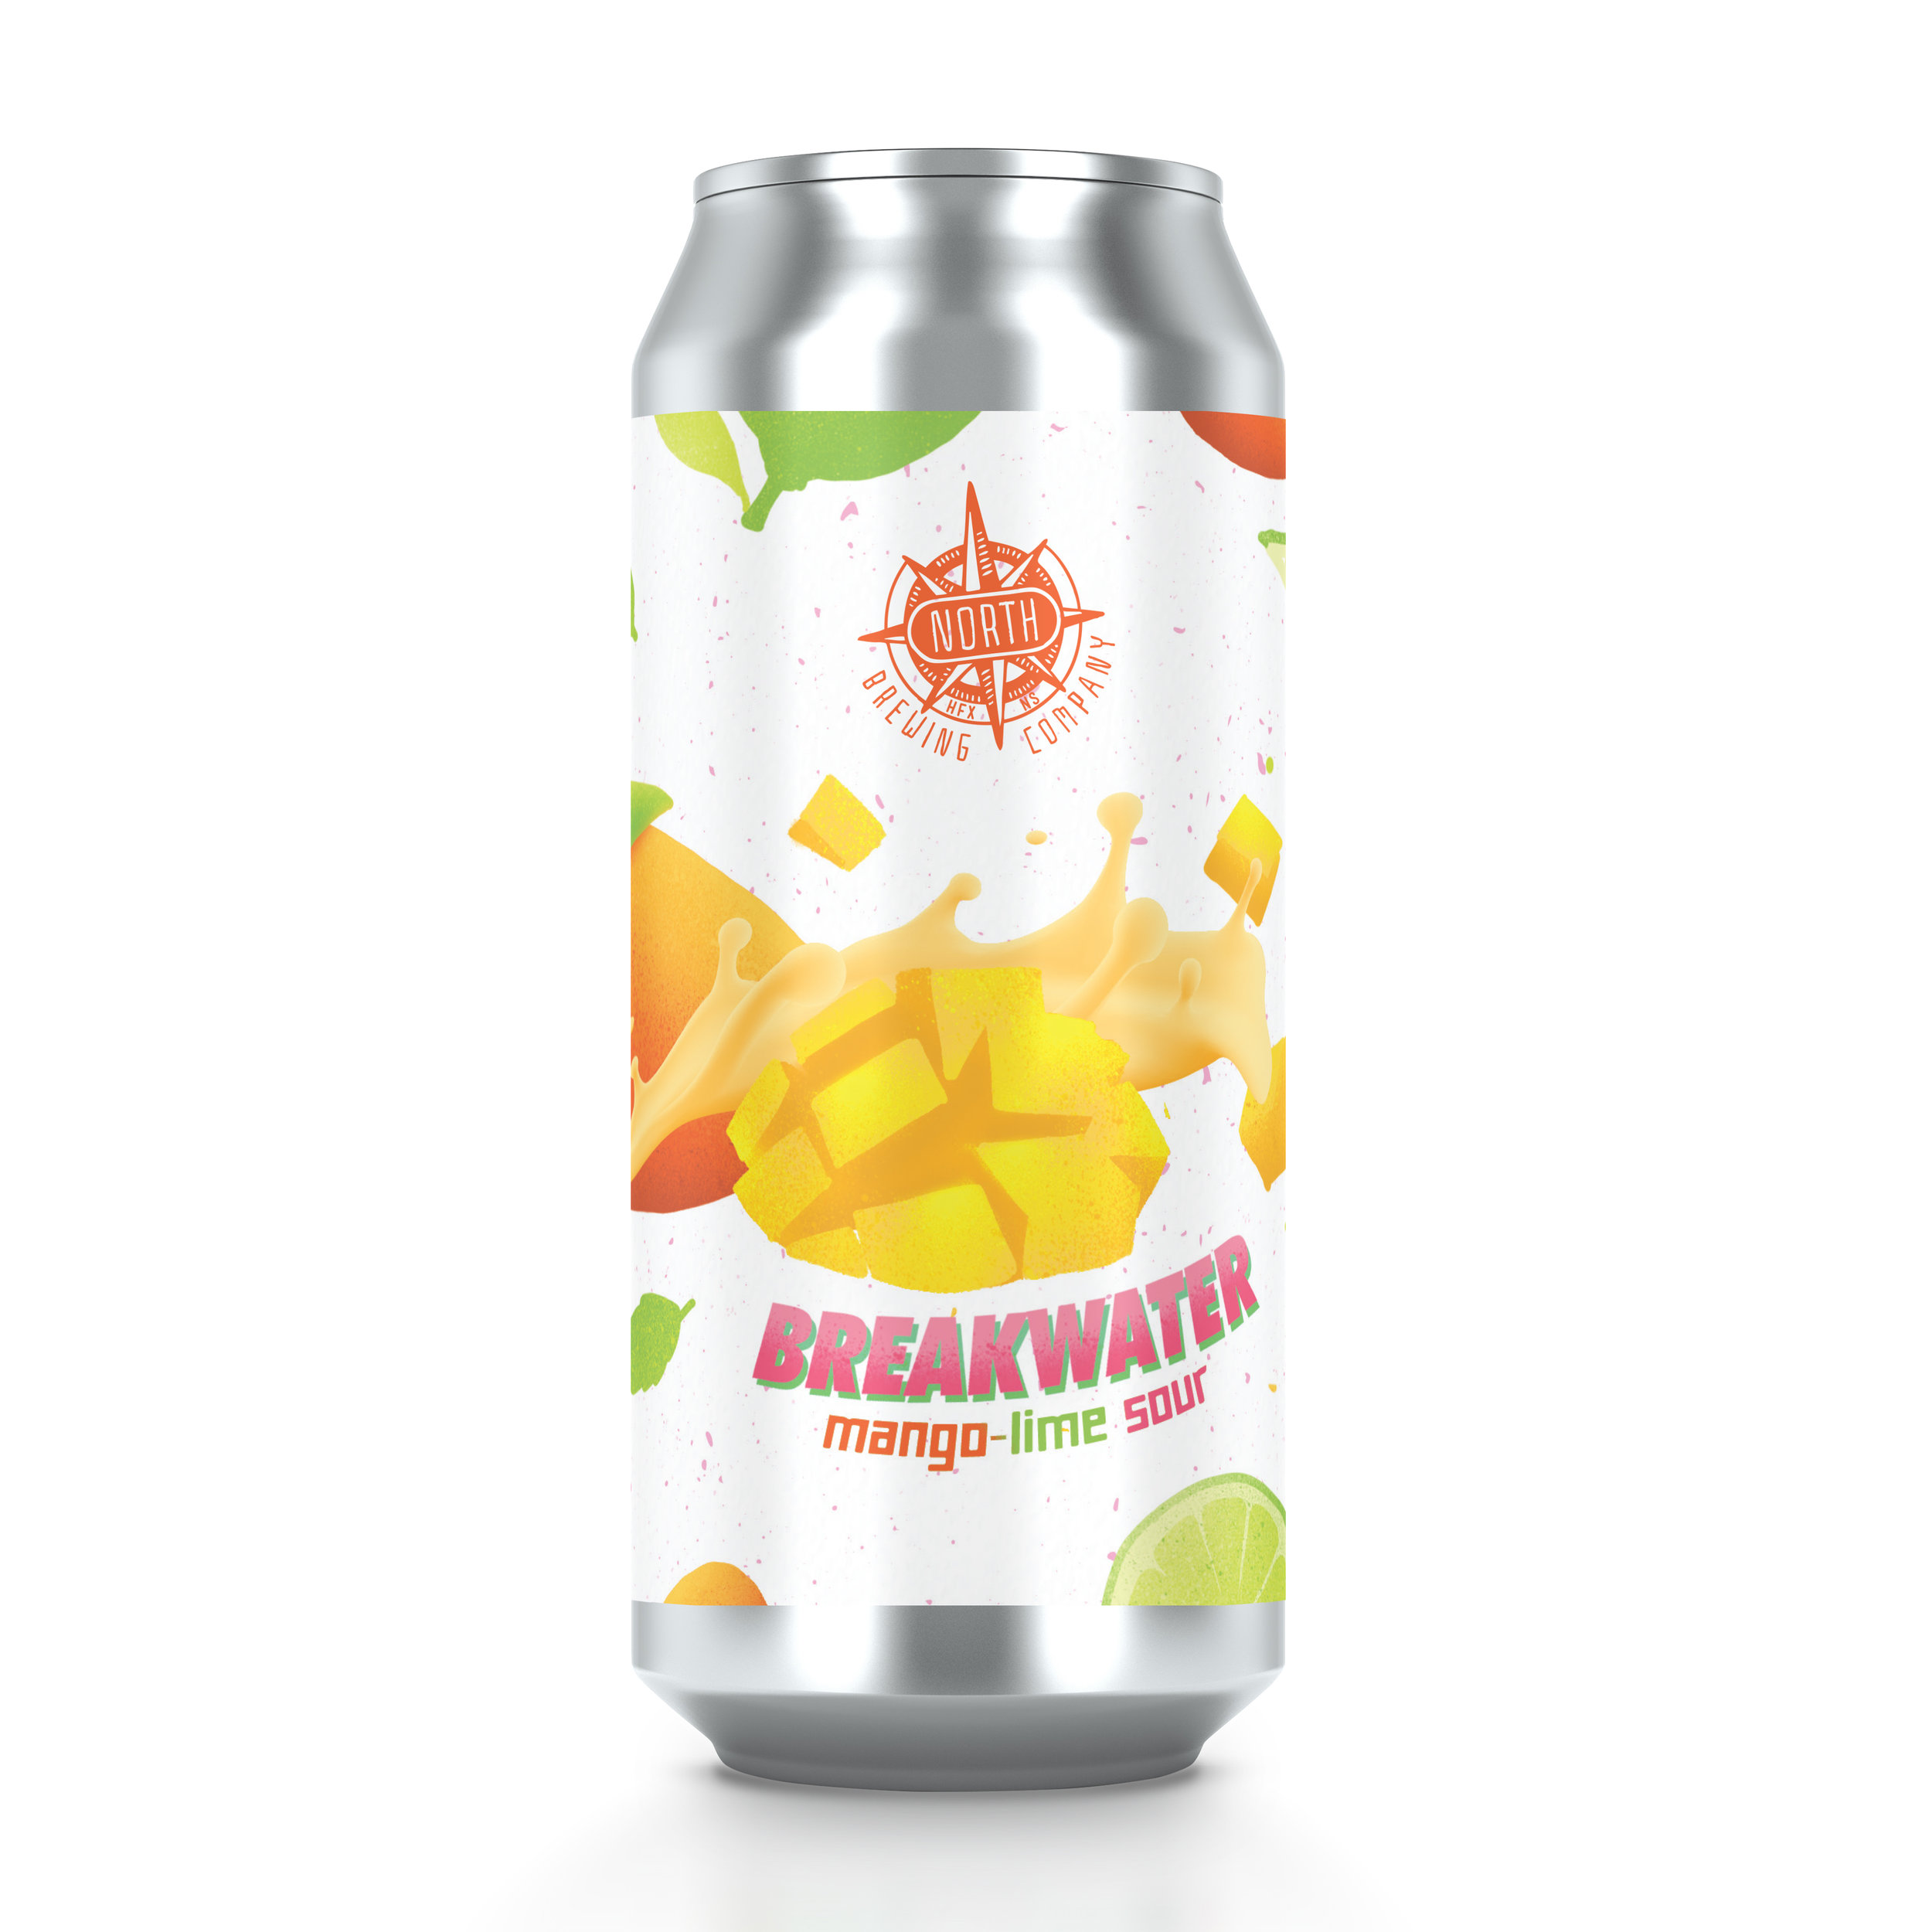 Breakwater Mango-Lime Sour